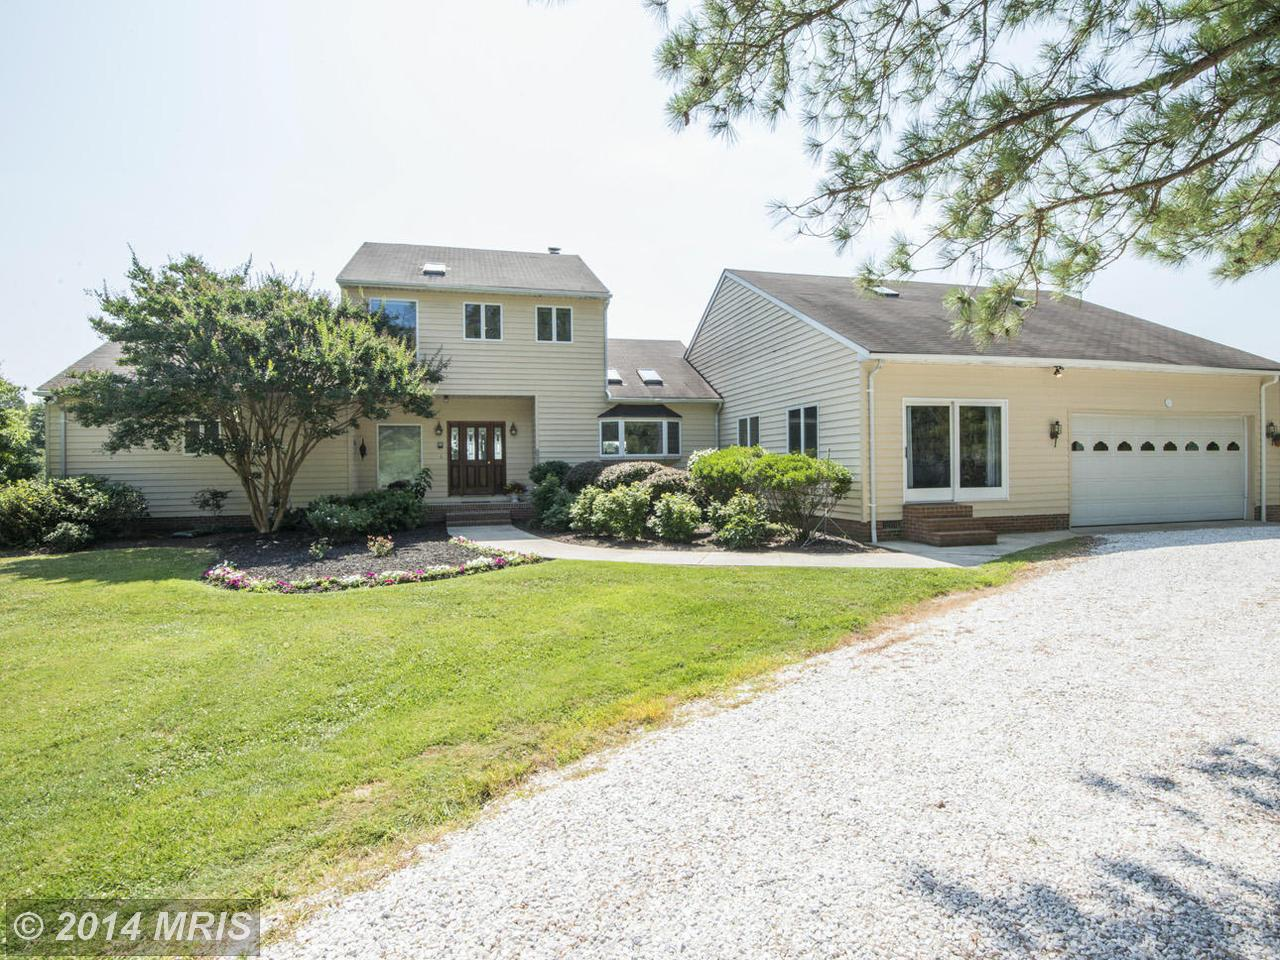 5005 Cherry Point Rd, Woolford, MD 21677